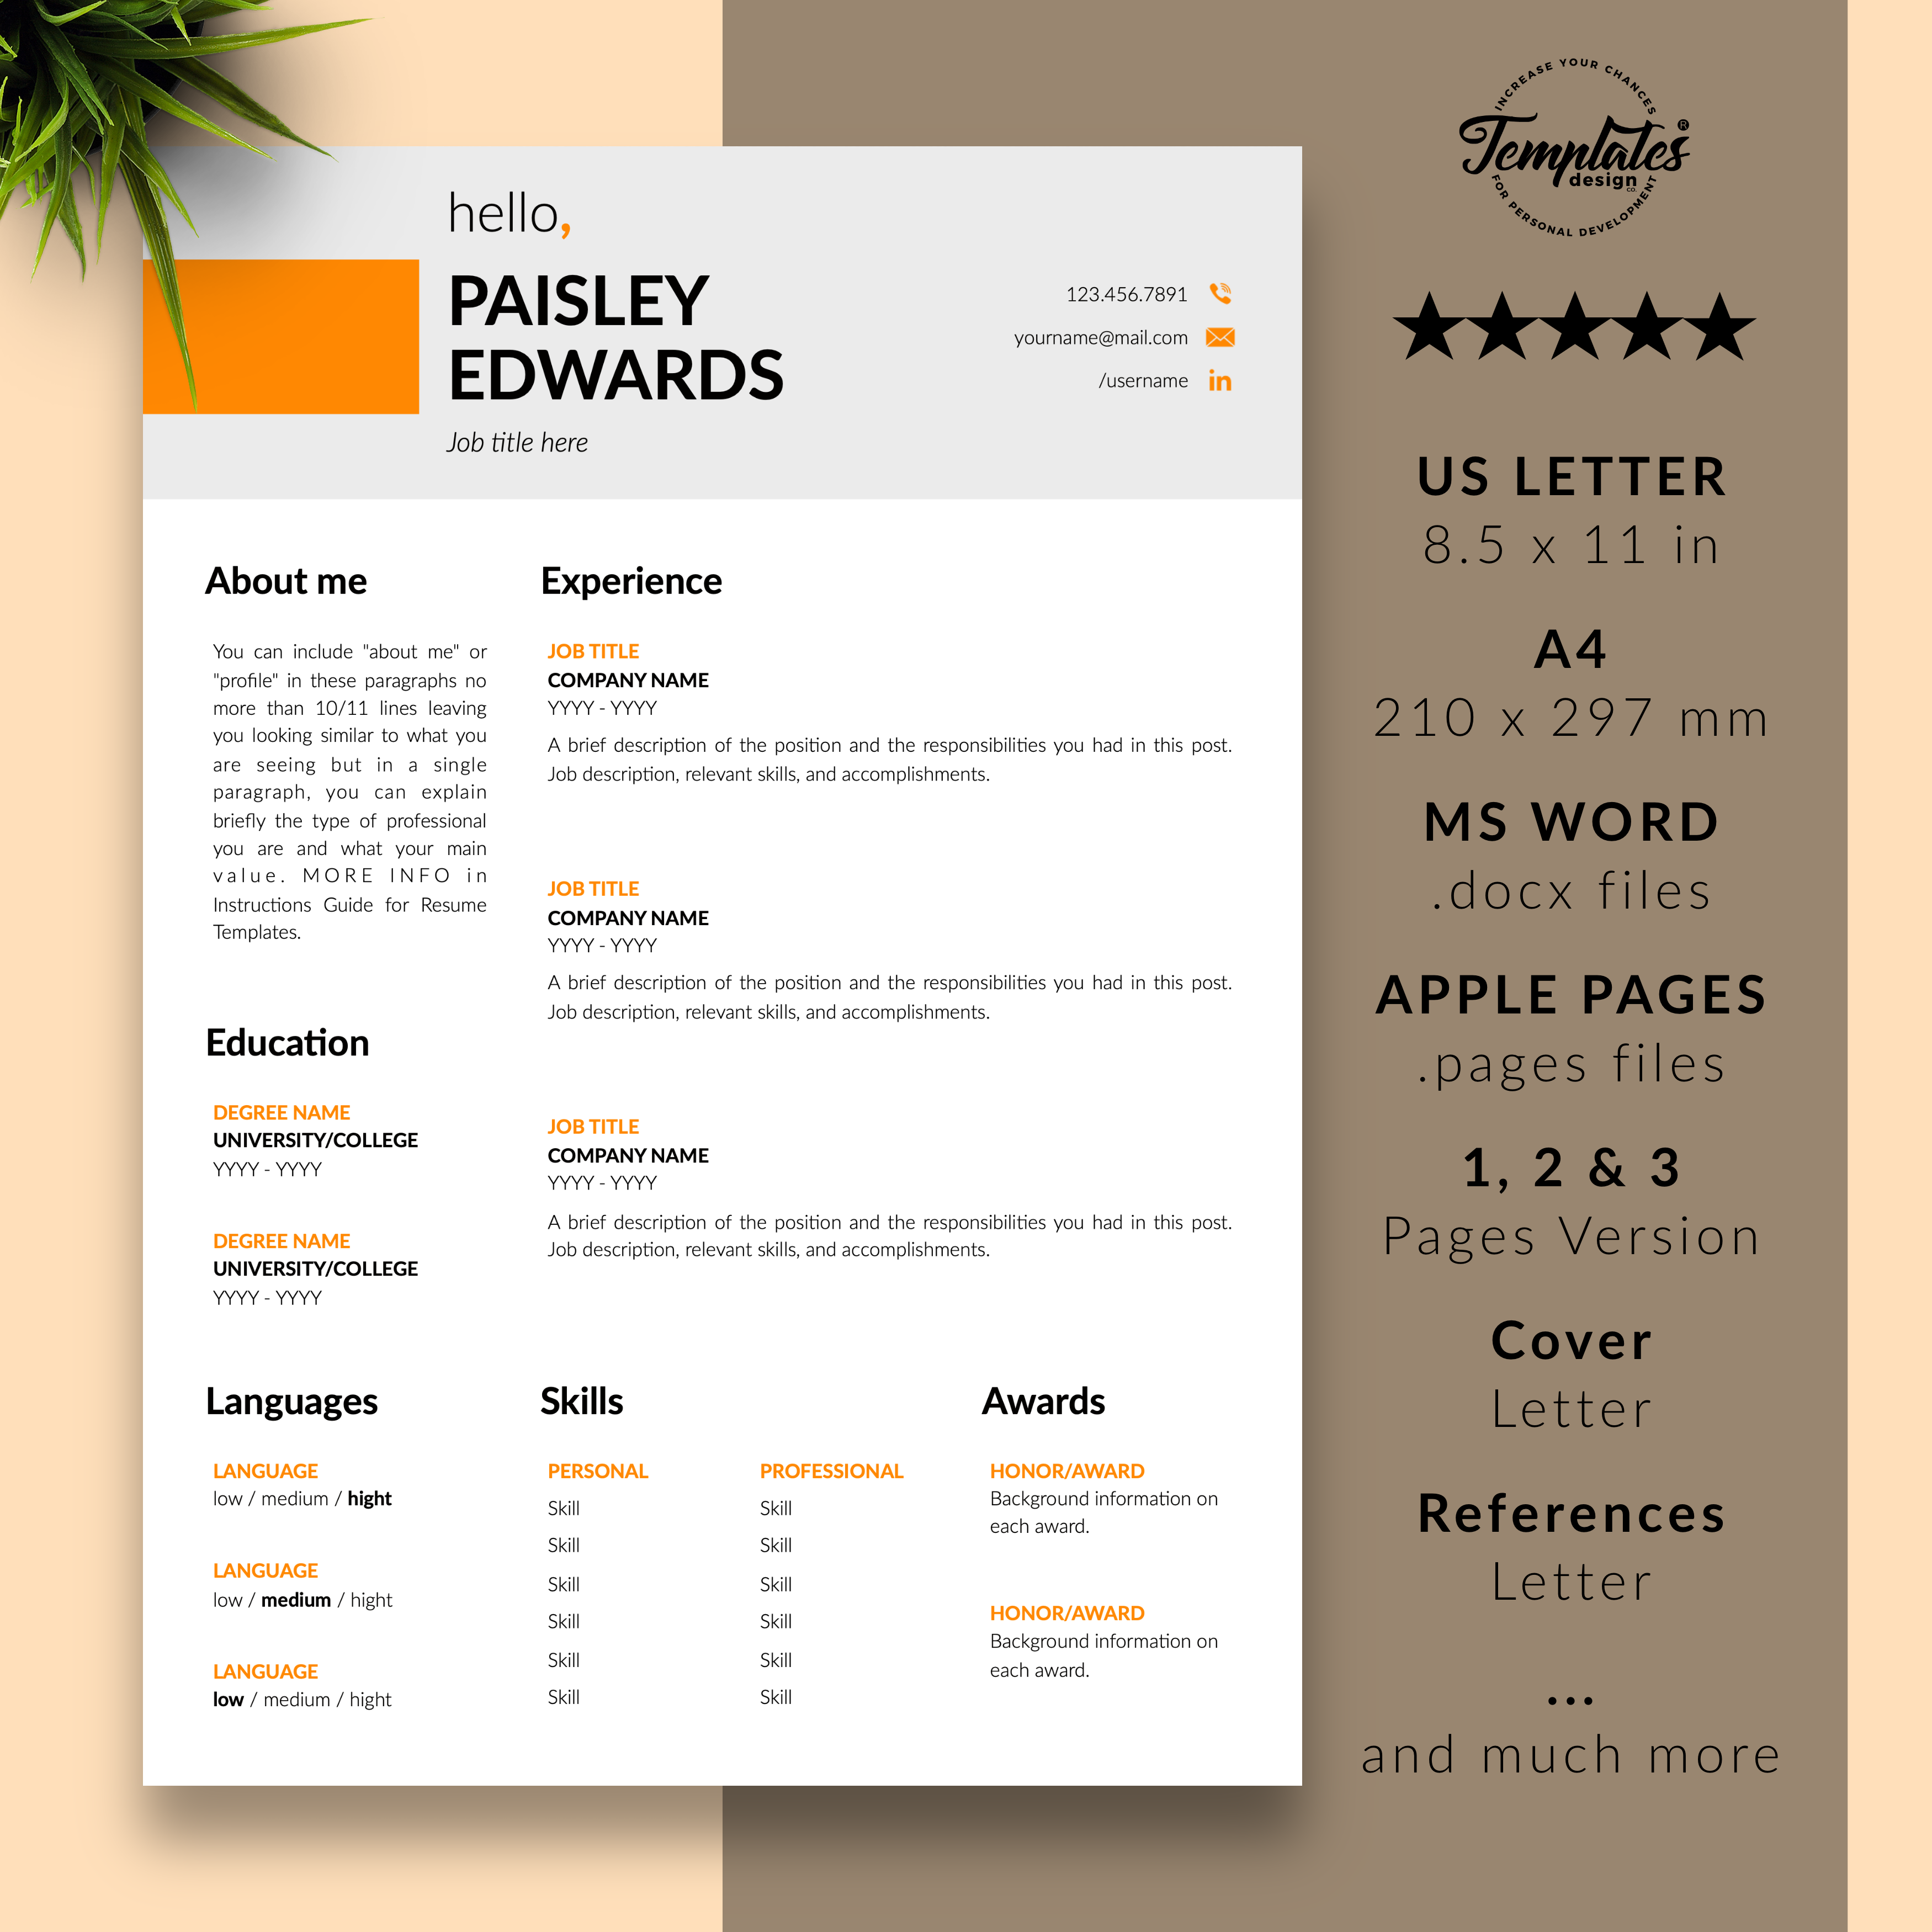 Paisley Edwards Modern Resume Cv Template For Word Pages Us Letter A4 Files 1 2 3 Page Resume Version Cover Letter References Cover Letter